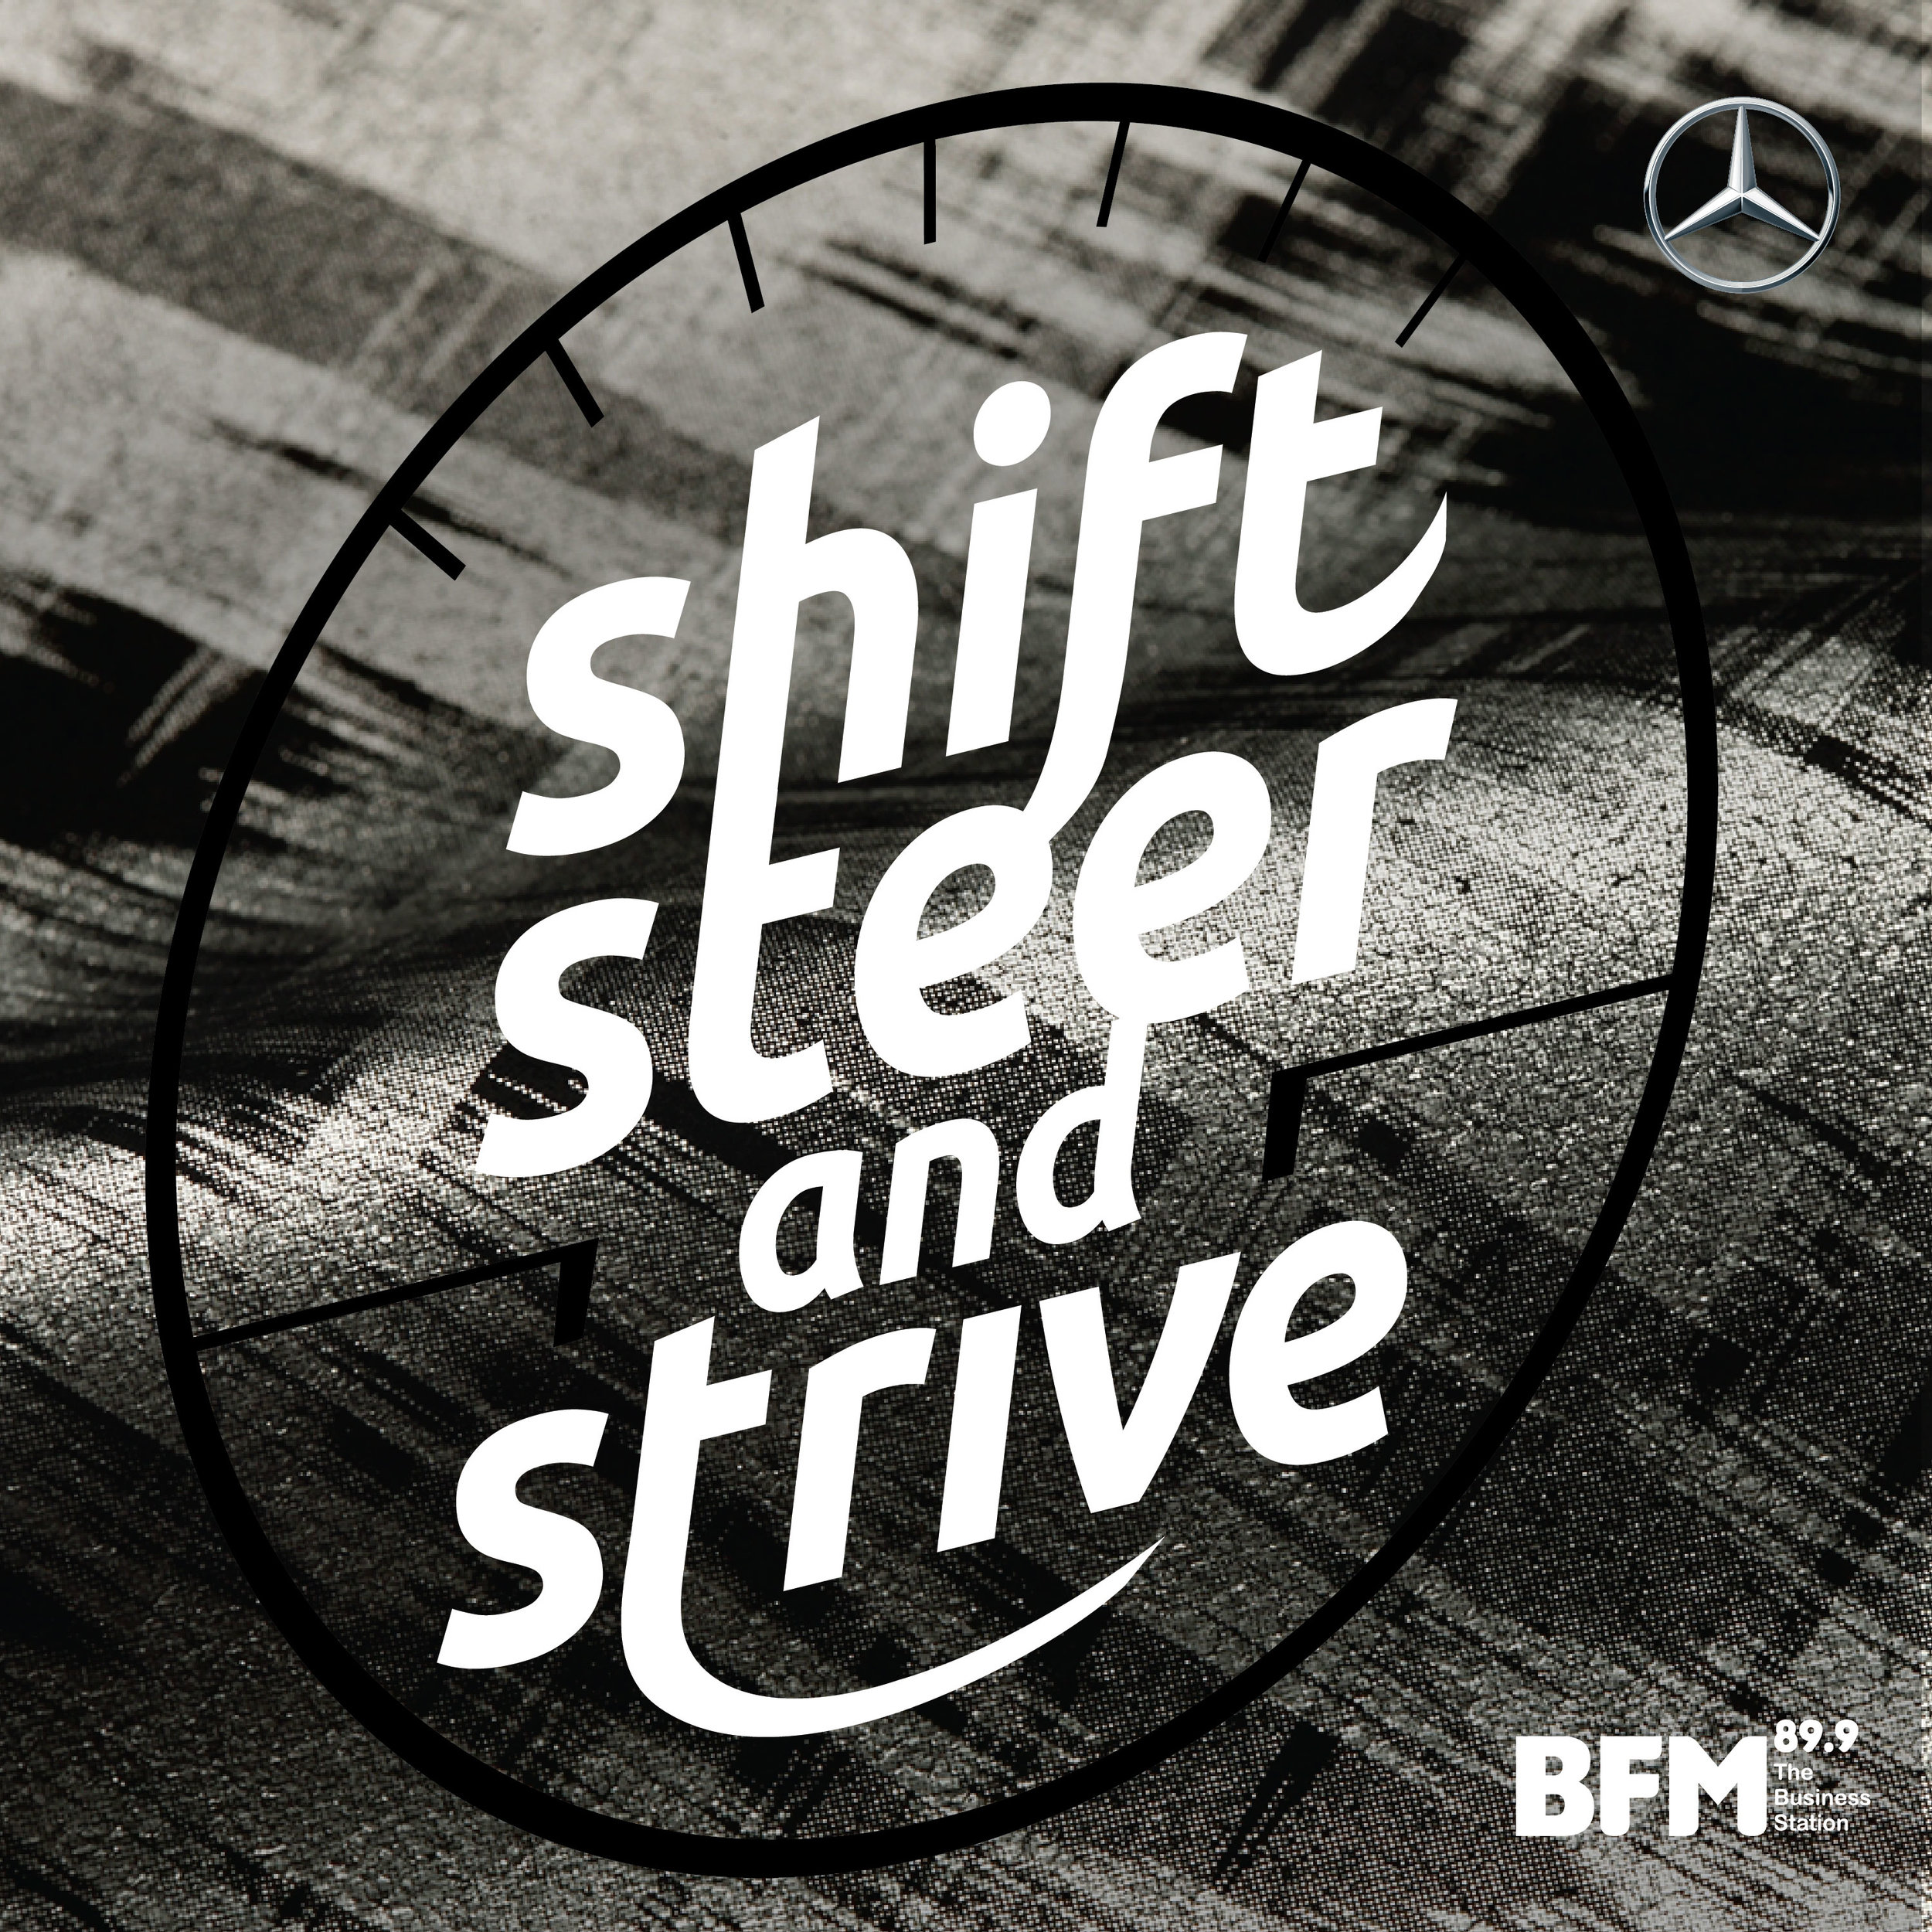 Mercedes-Benz and BFM89.9 takes you inside the minds of trailblazers to find out what makes them tick. Featuring guests such as Azran Osman-Rani and Dato' Faridah Merican, we hear candidly about their passions and motivations, as well as their trials and tribulations.